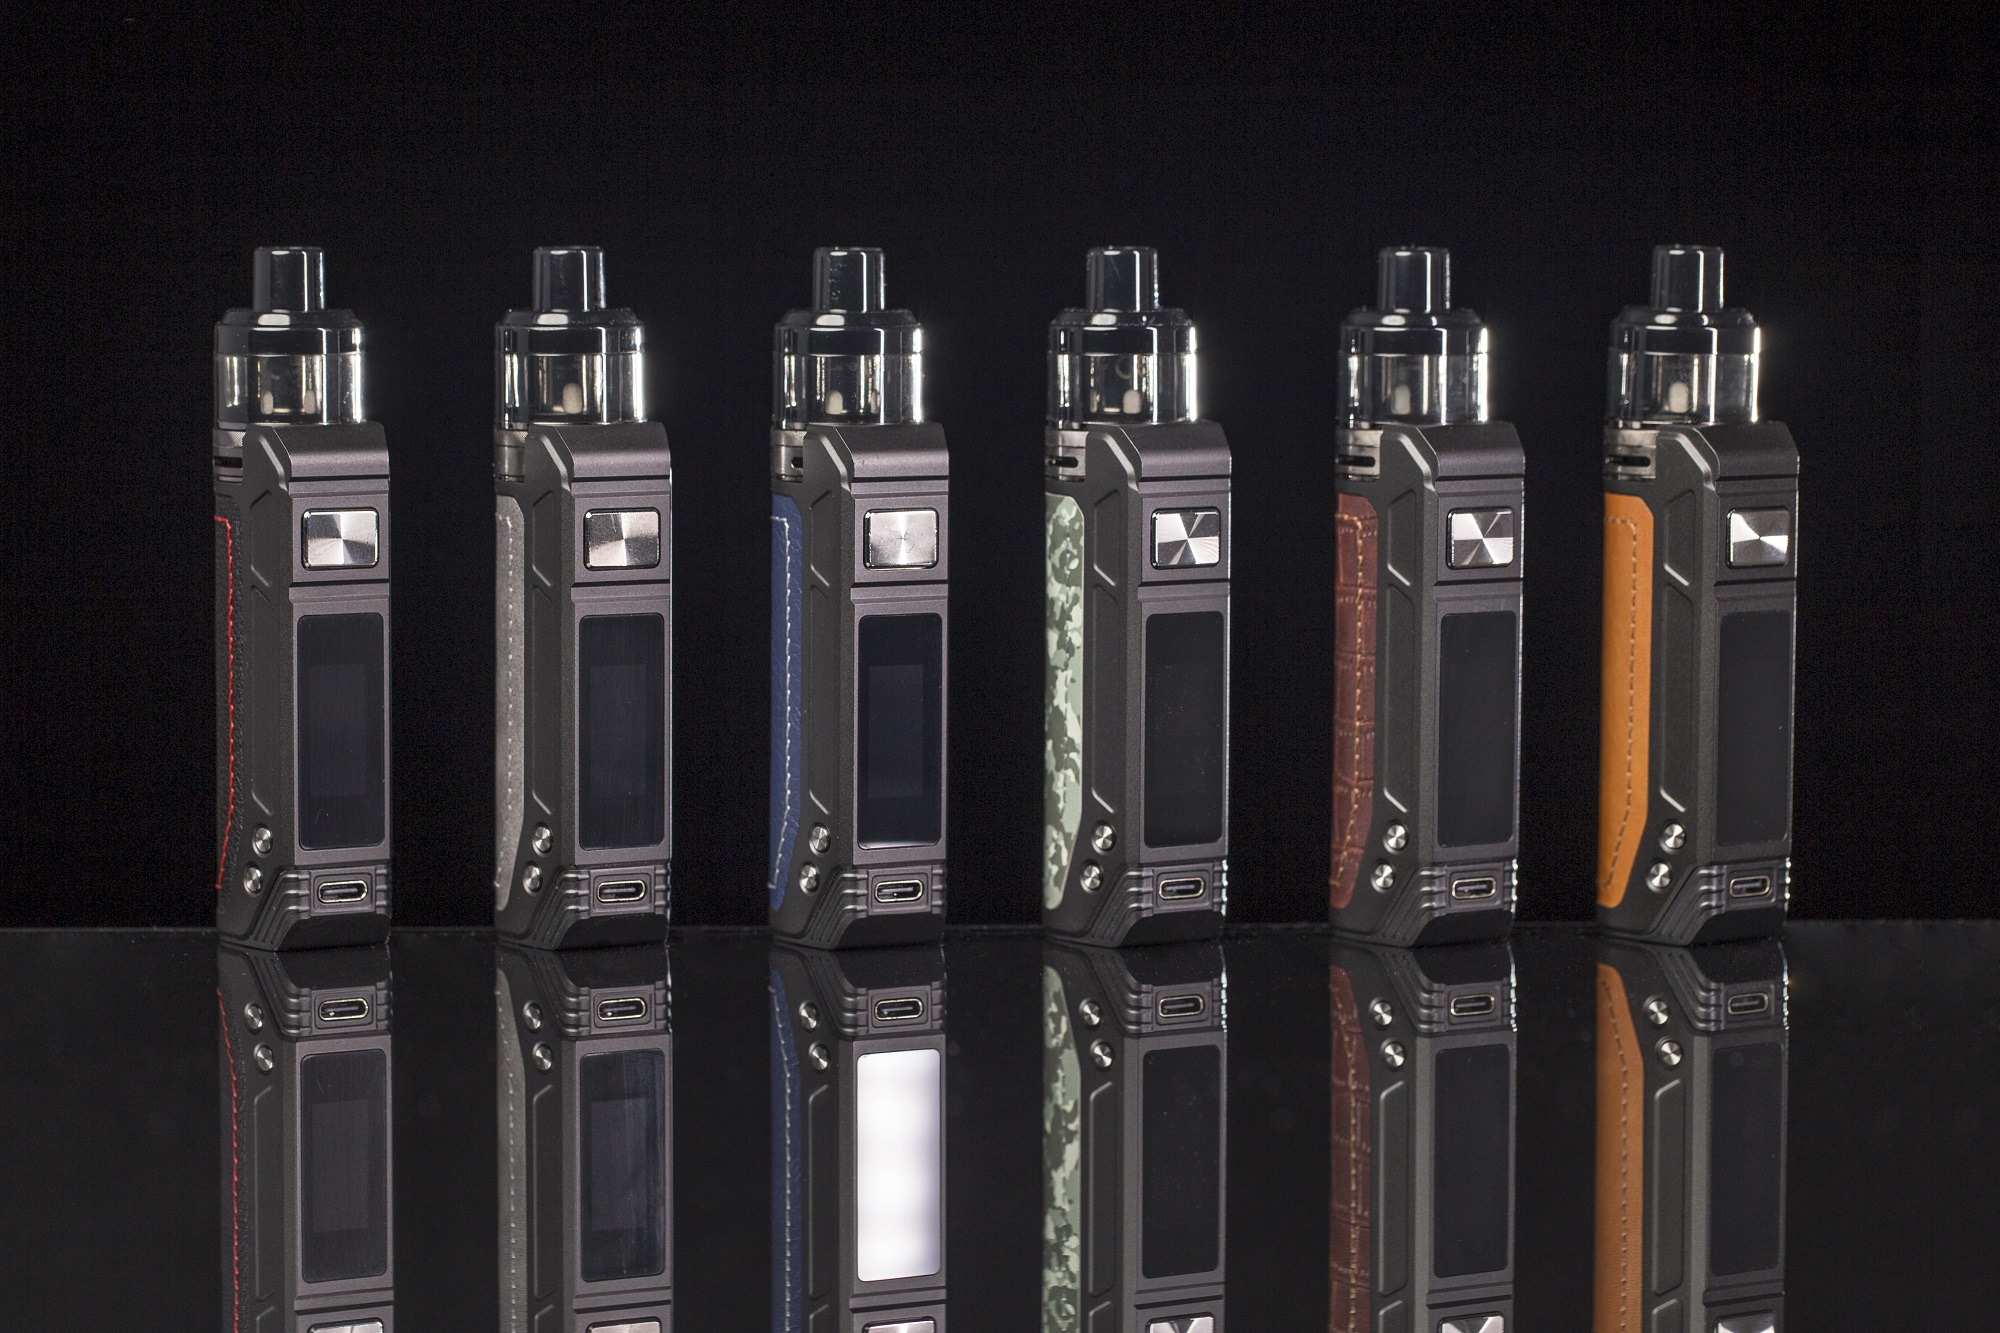 The Aspire BP80 pod mod can fire up to 80 watts.